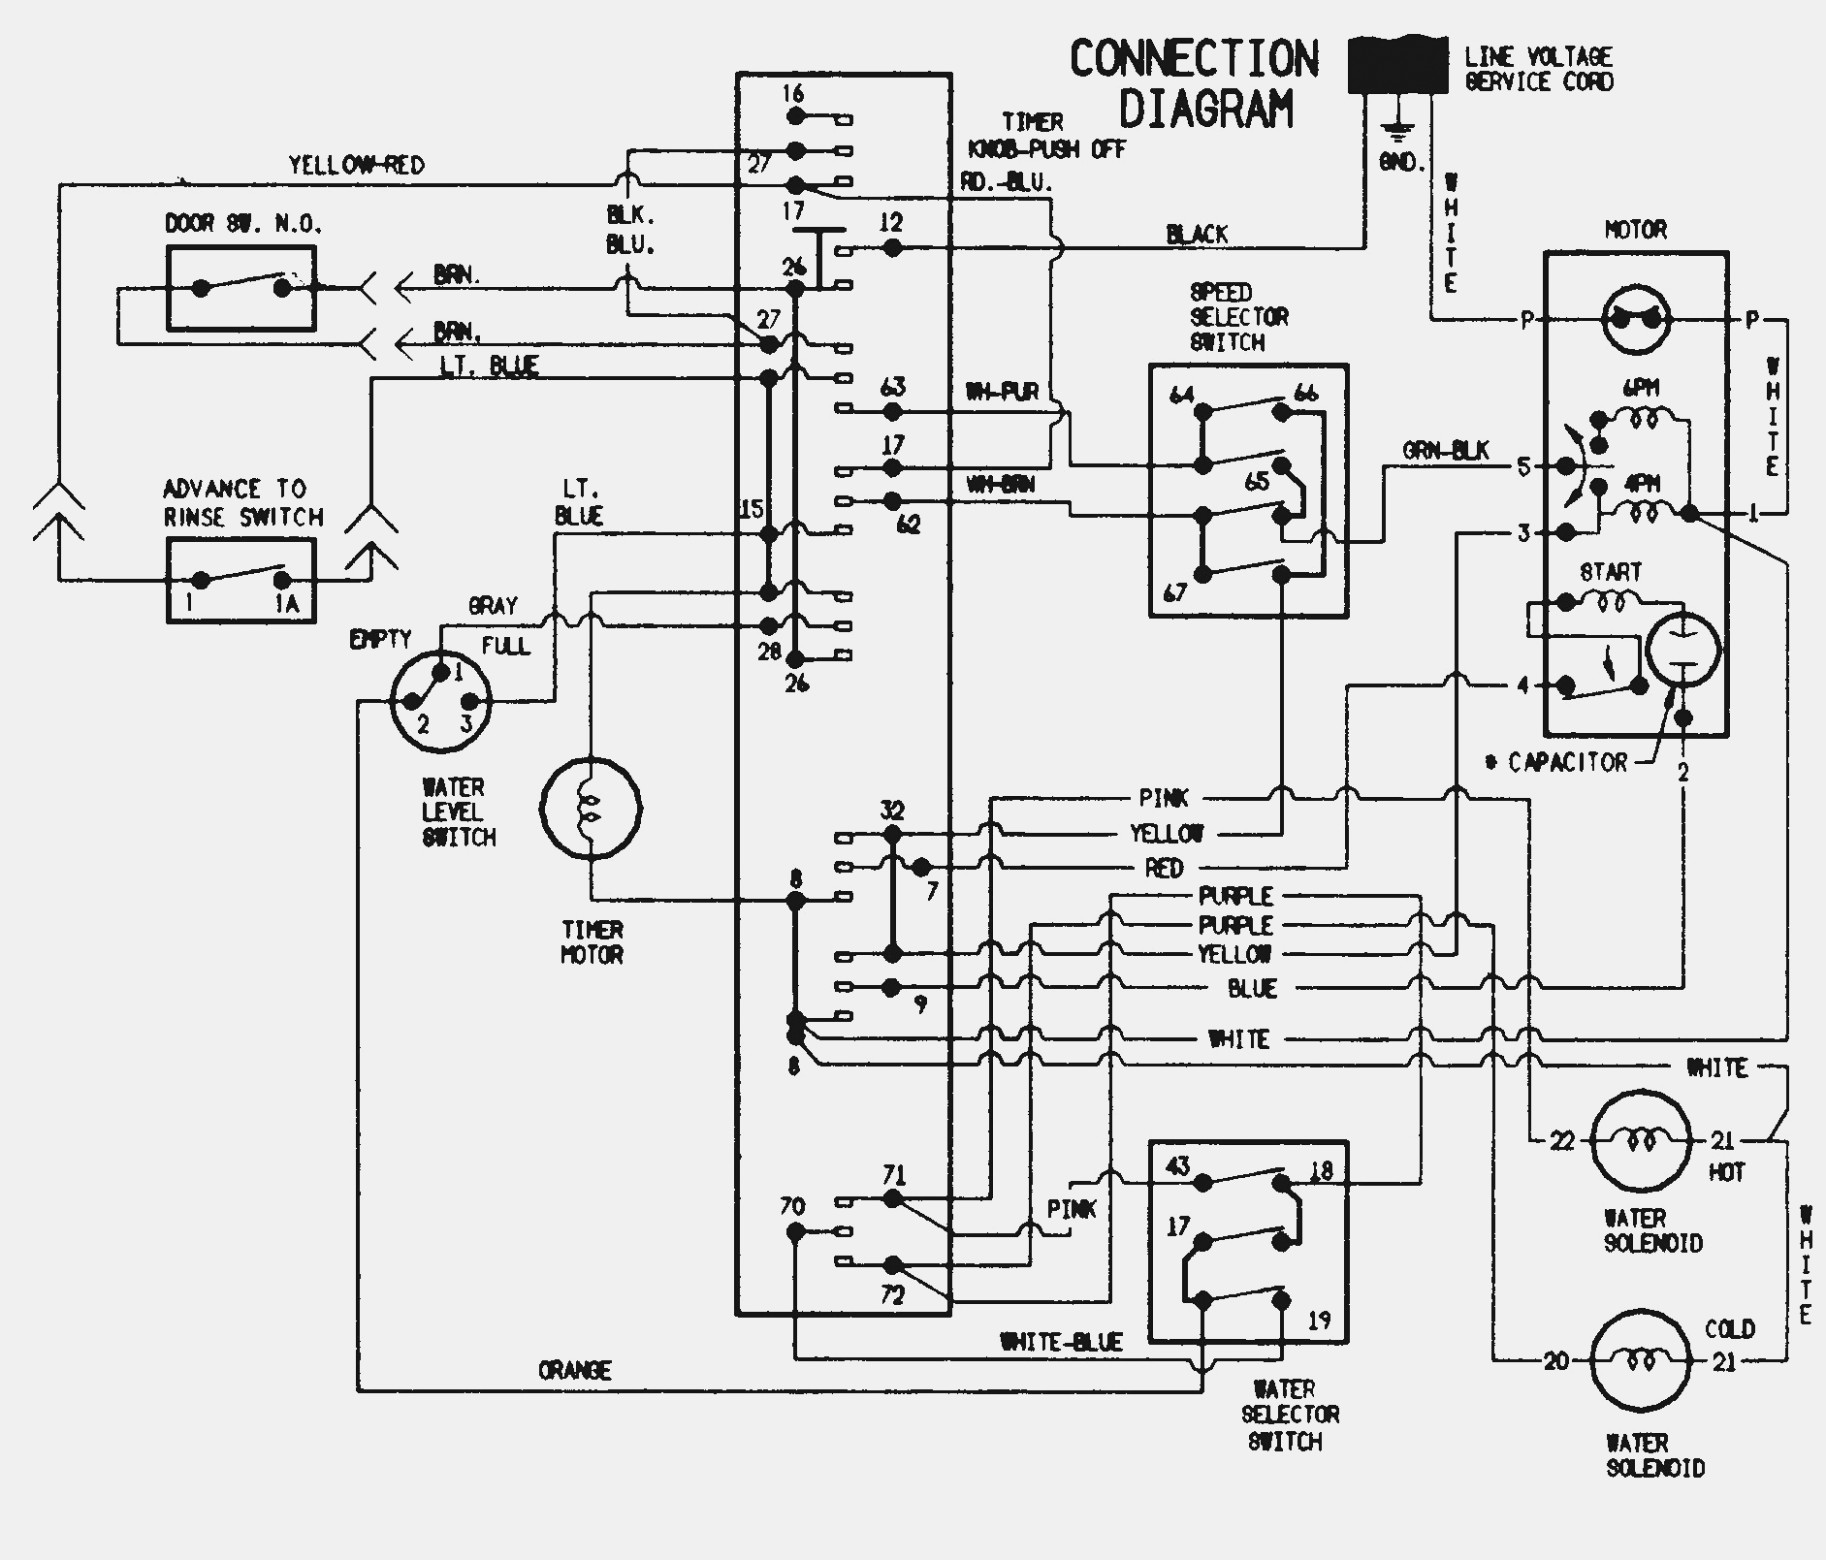 [ET_5103] Suzuki Gn250 Wiring Diagram Wiring Diagram